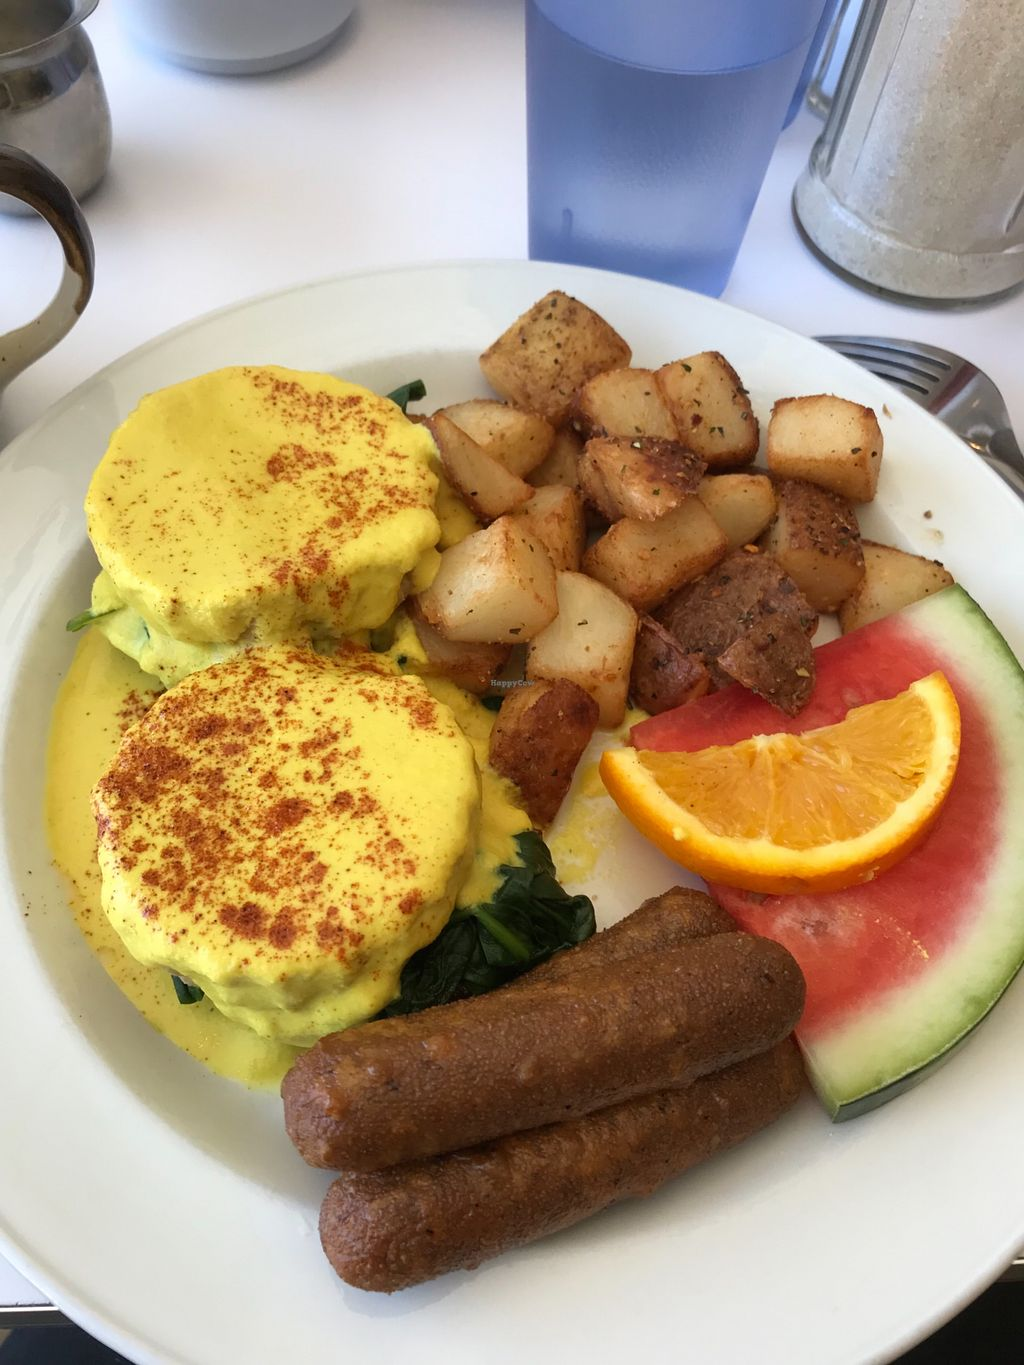 """Photo of The Planet Diner  by <a href=""""/members/profile/VeganQC"""">VeganQC</a> <br/>Tofu Benny and faux sausage.  <br/> May 14, 2018  - <a href='/contact/abuse/image/113075/399435'>Report</a>"""